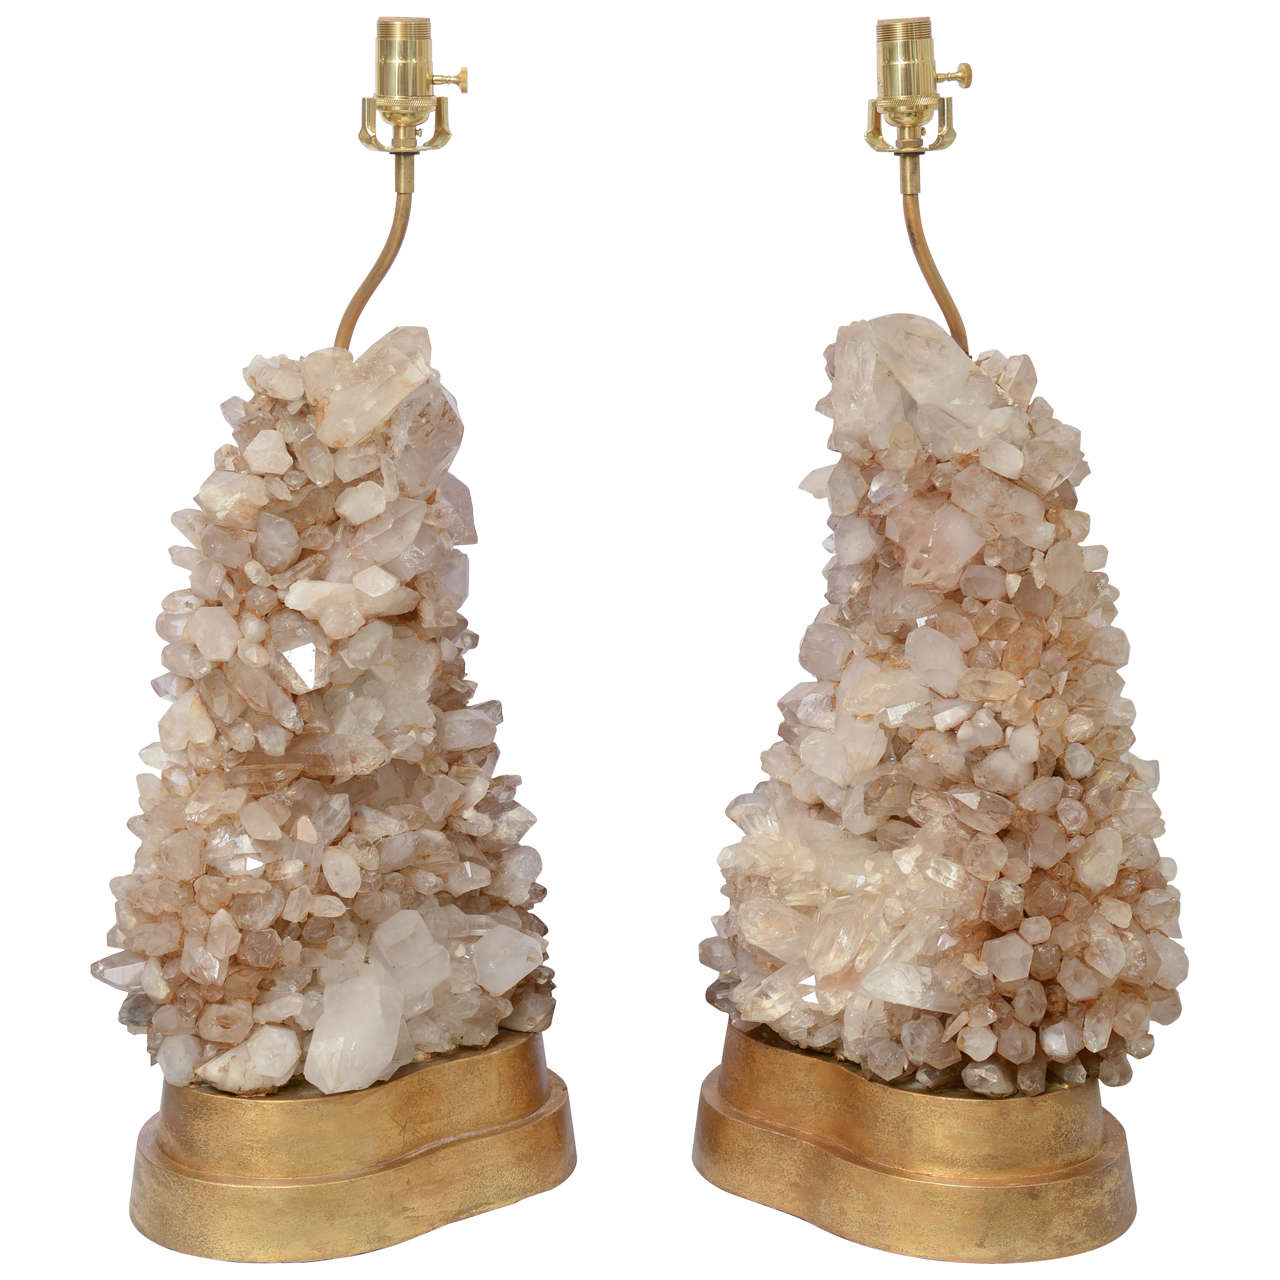 Rare pair of carole stupell rock crystal lamps at 1stdibs rare pair of carole stupell rock crystal lamps for sale mozeypictures Gallery